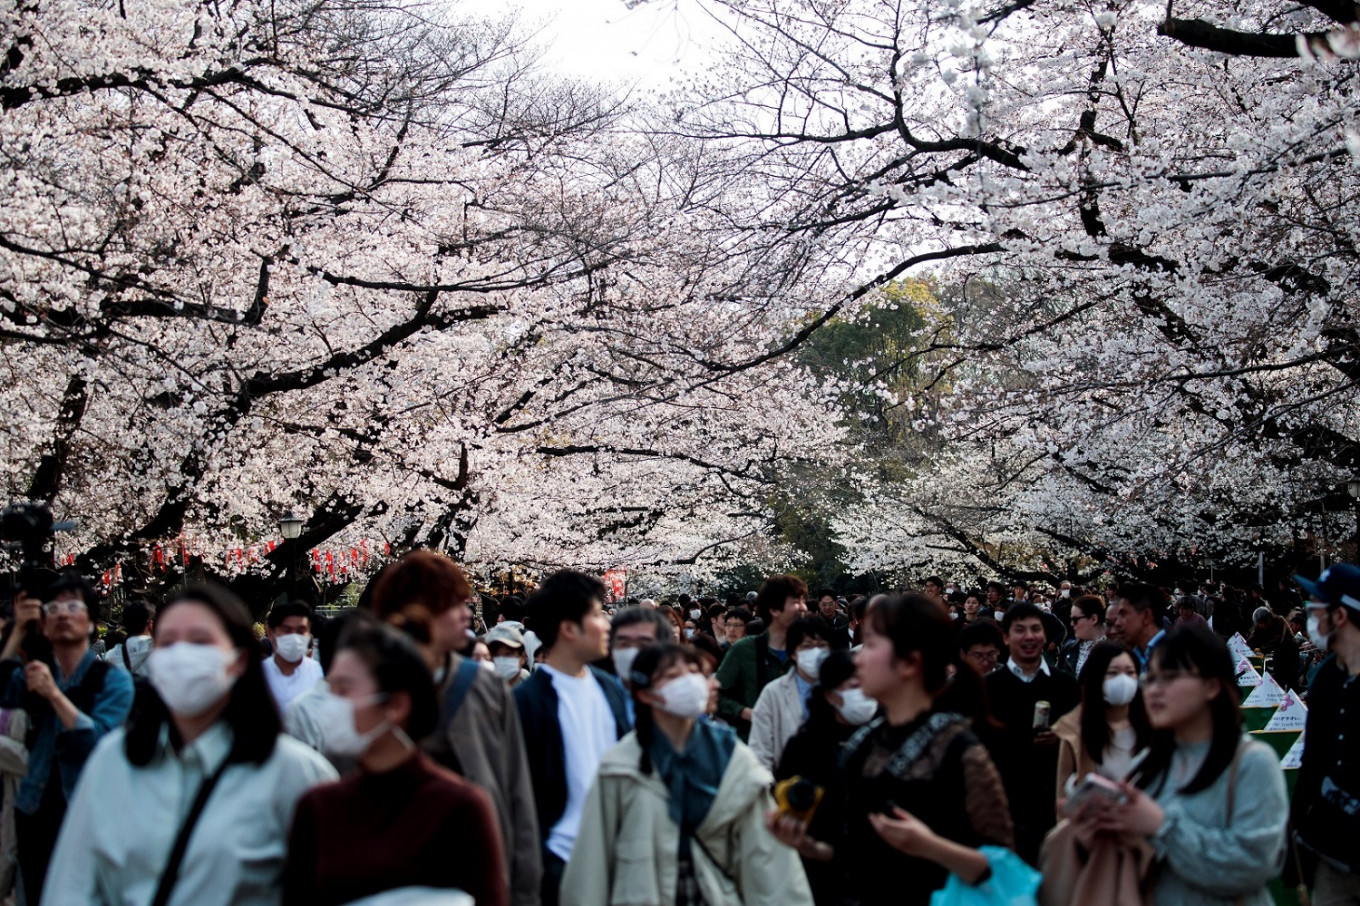 'Joy of spring': Japan fetes cherry blossoms despite virus